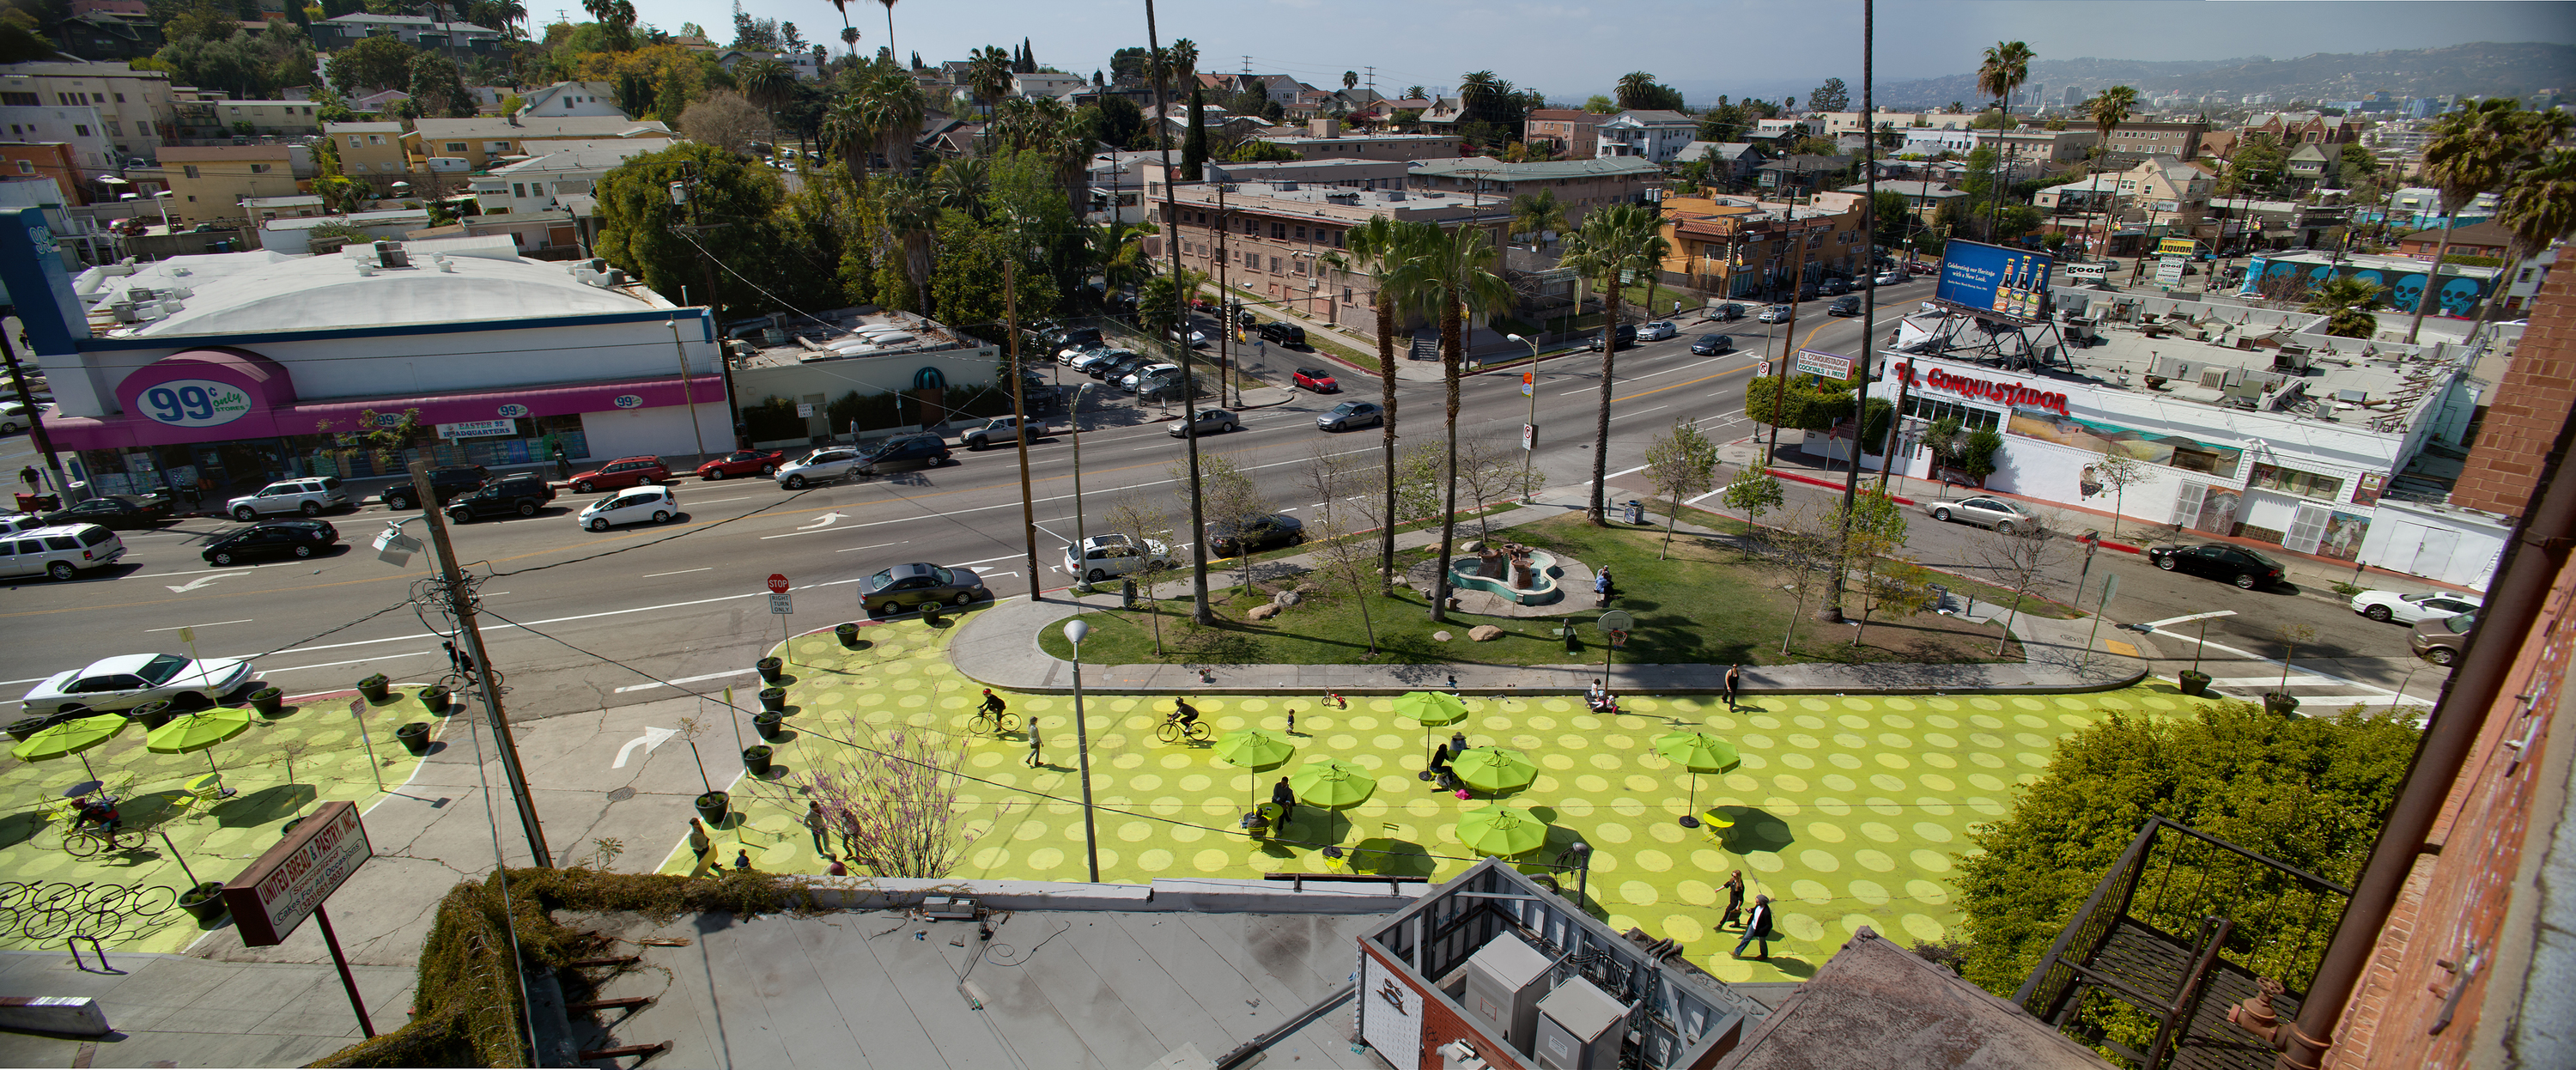 Sunset Triangle Plaza in Silver Lake